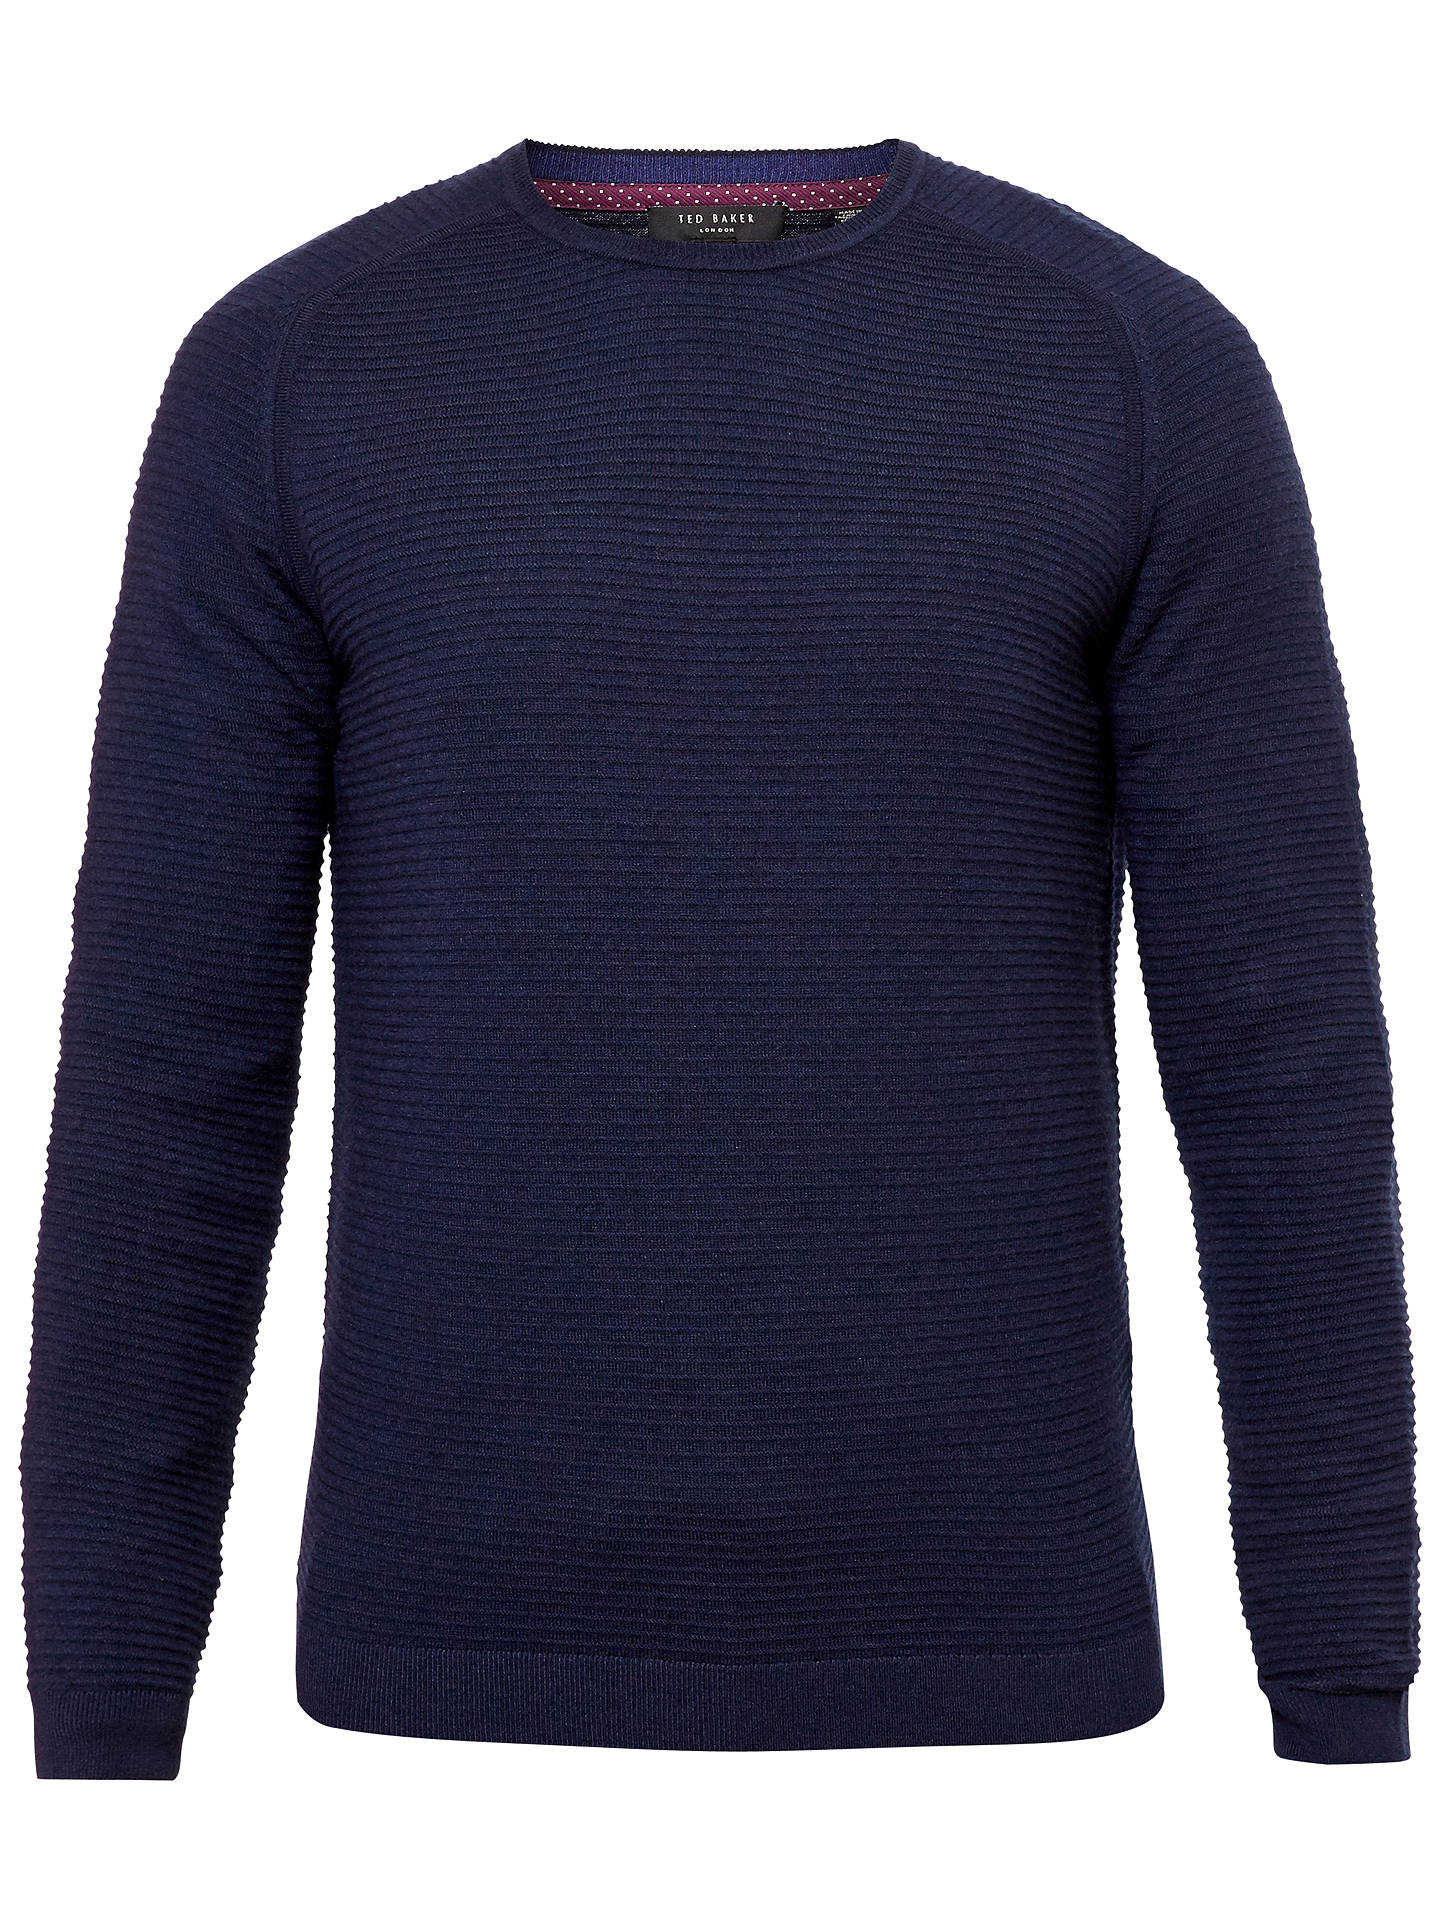 eeb49aba096c32 Ted Baker Potter Textured Crew Neck Jumper at John Lewis   Partners